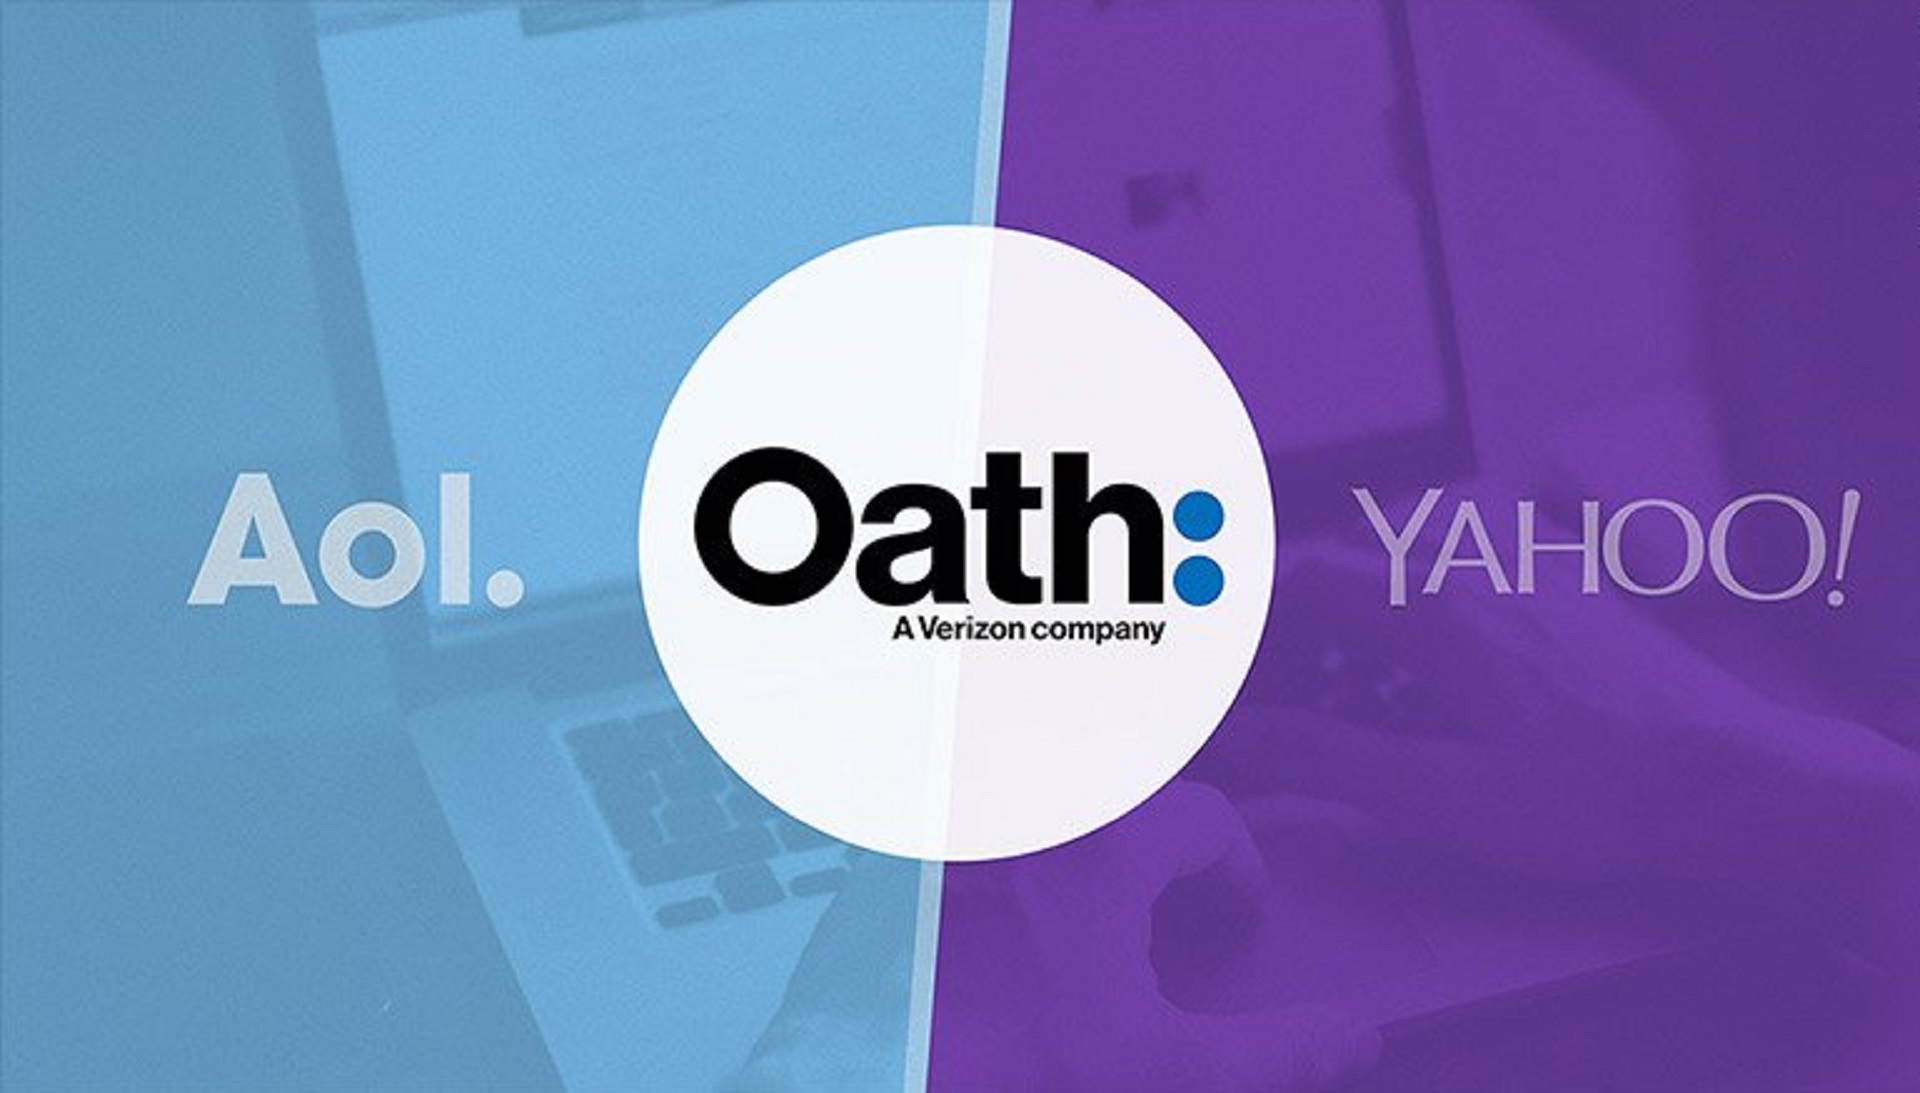 Verizon rebranded AOL and Yahoo! as Oath back in 2017.